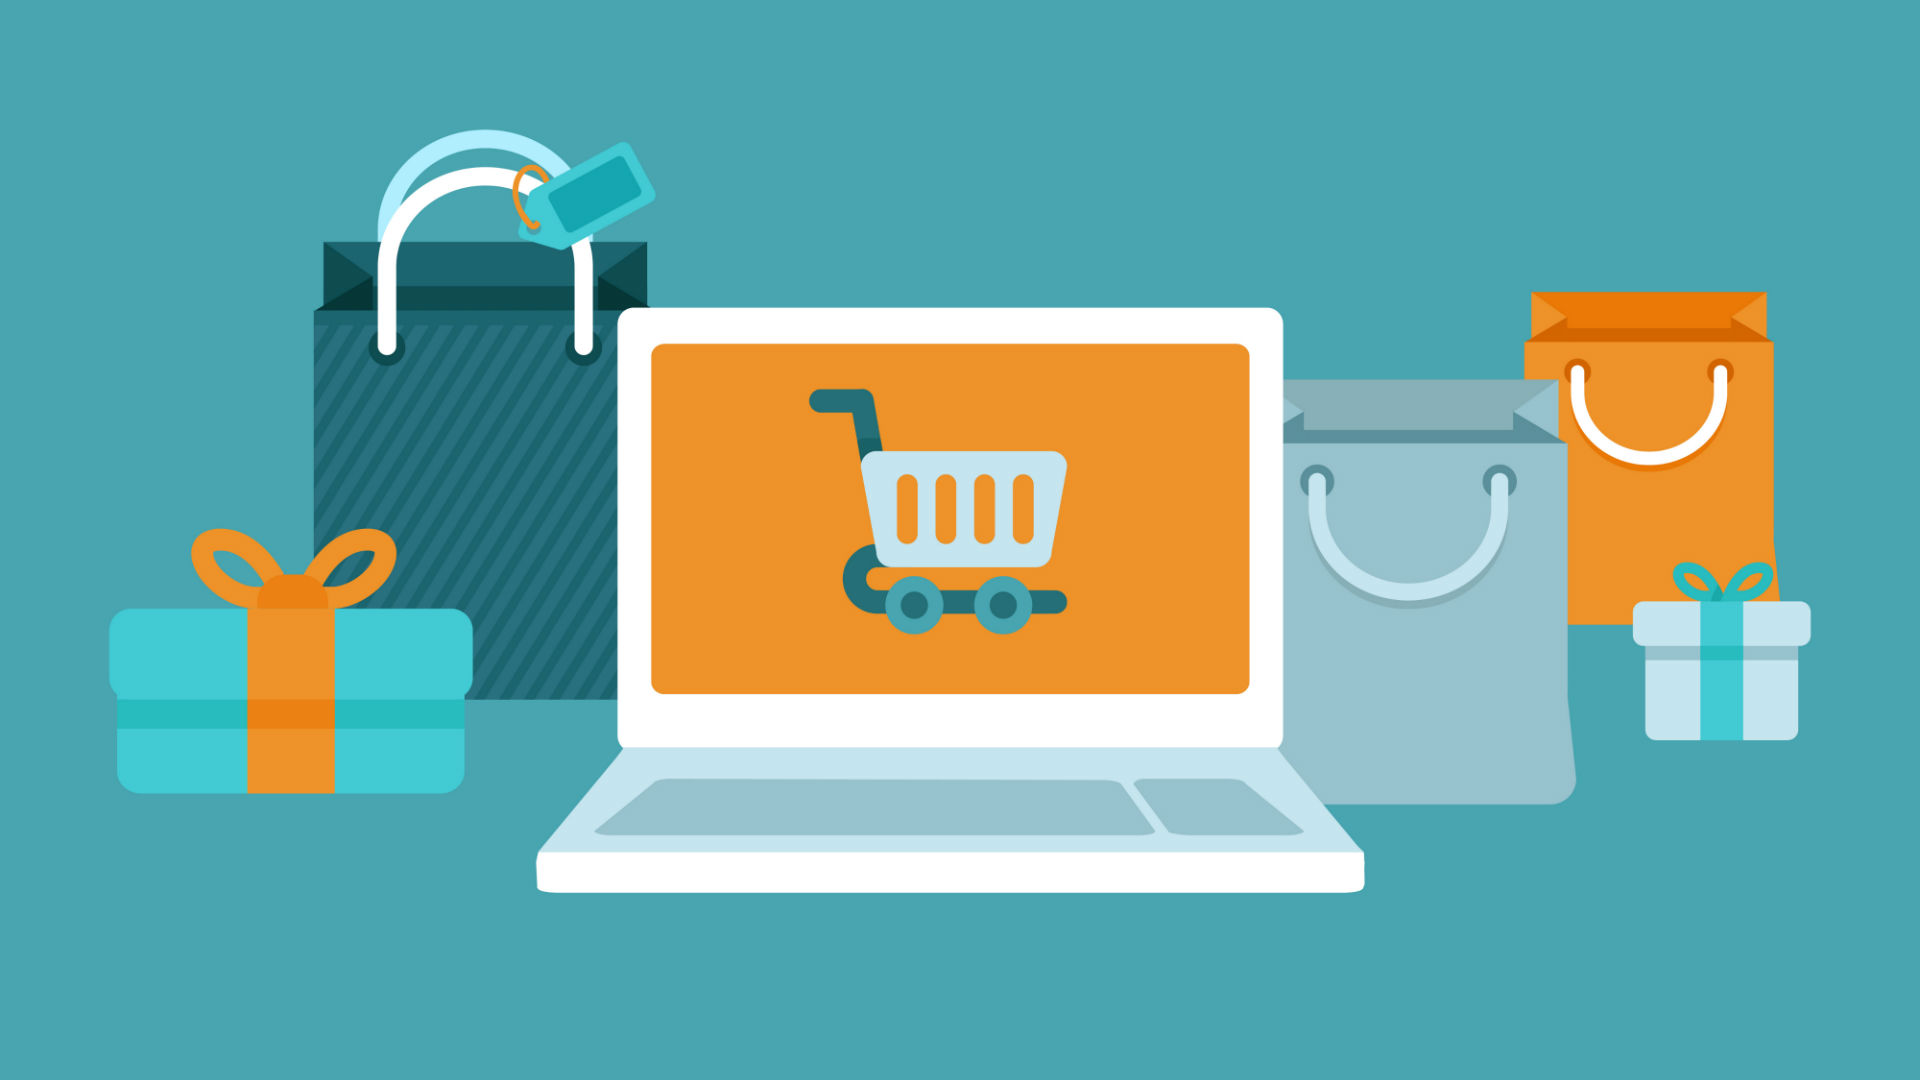 How to Avoid Developing eCommerce Apps That Don't Sell